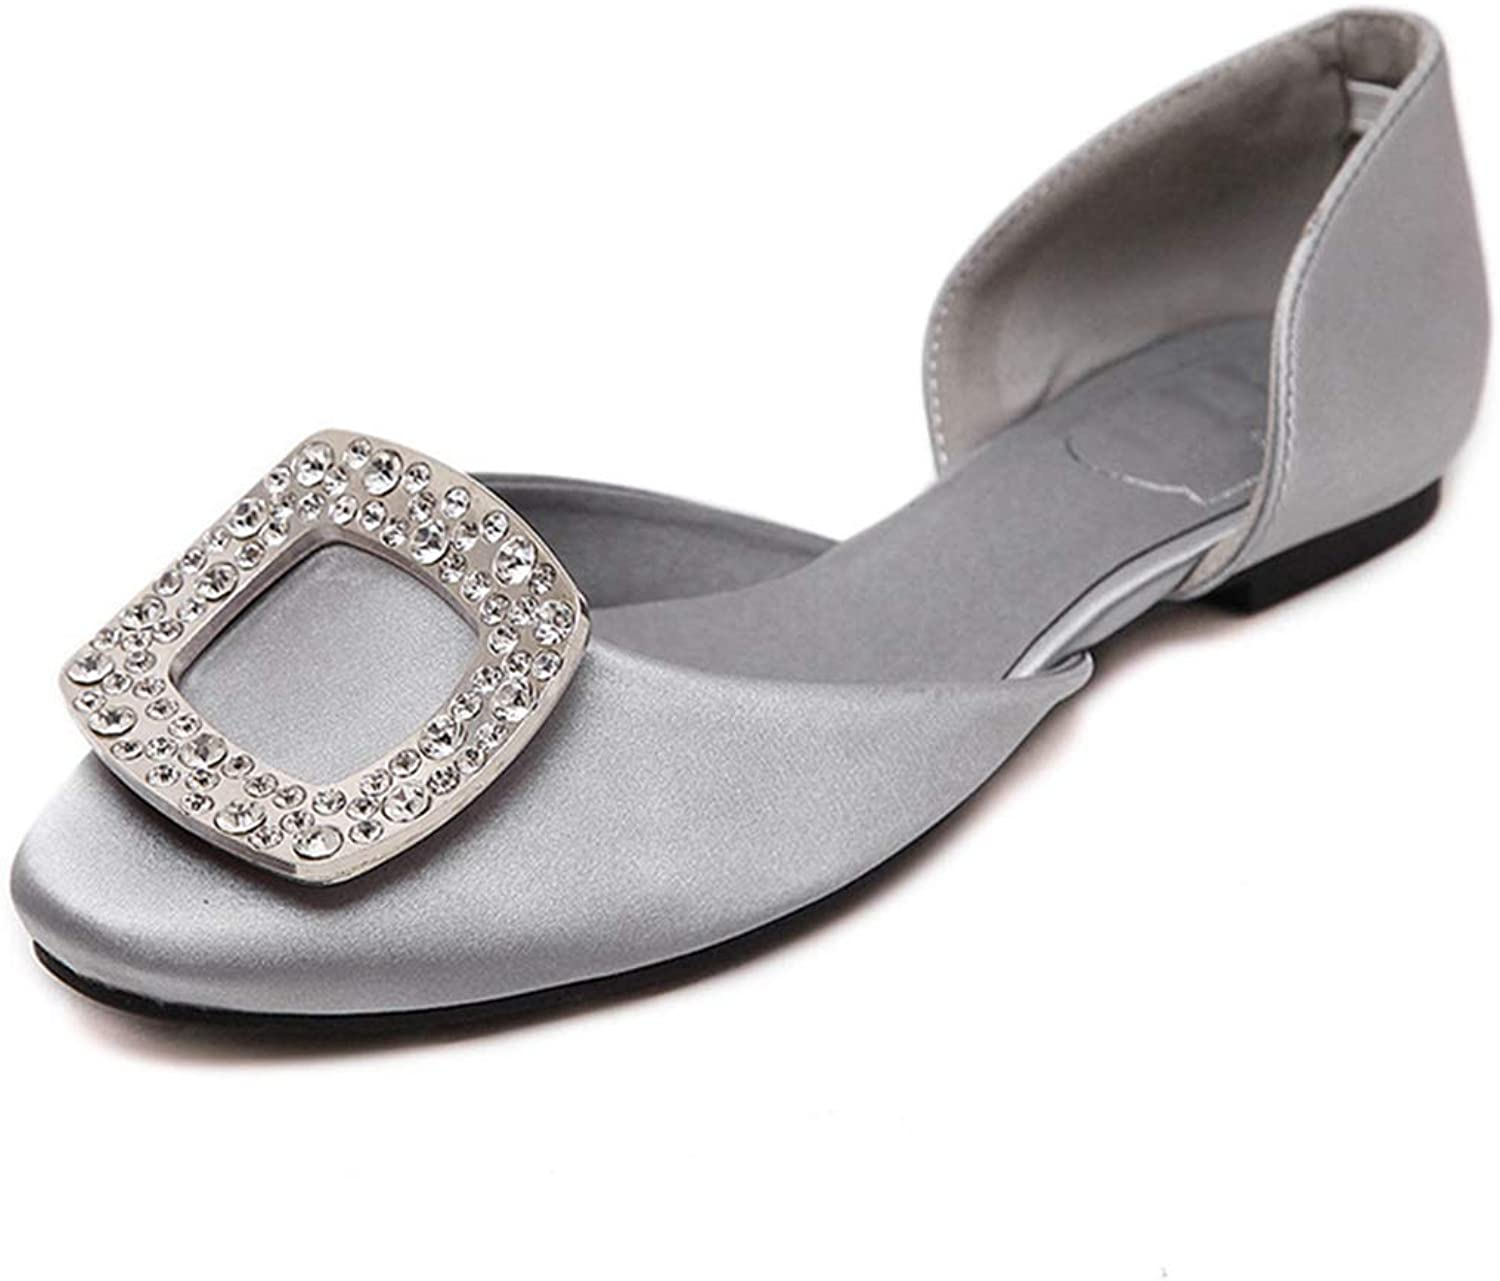 Drew Toby Women's Flats, Rhinestone Buckle Square-Toe Pink Silver Spring Work shoes